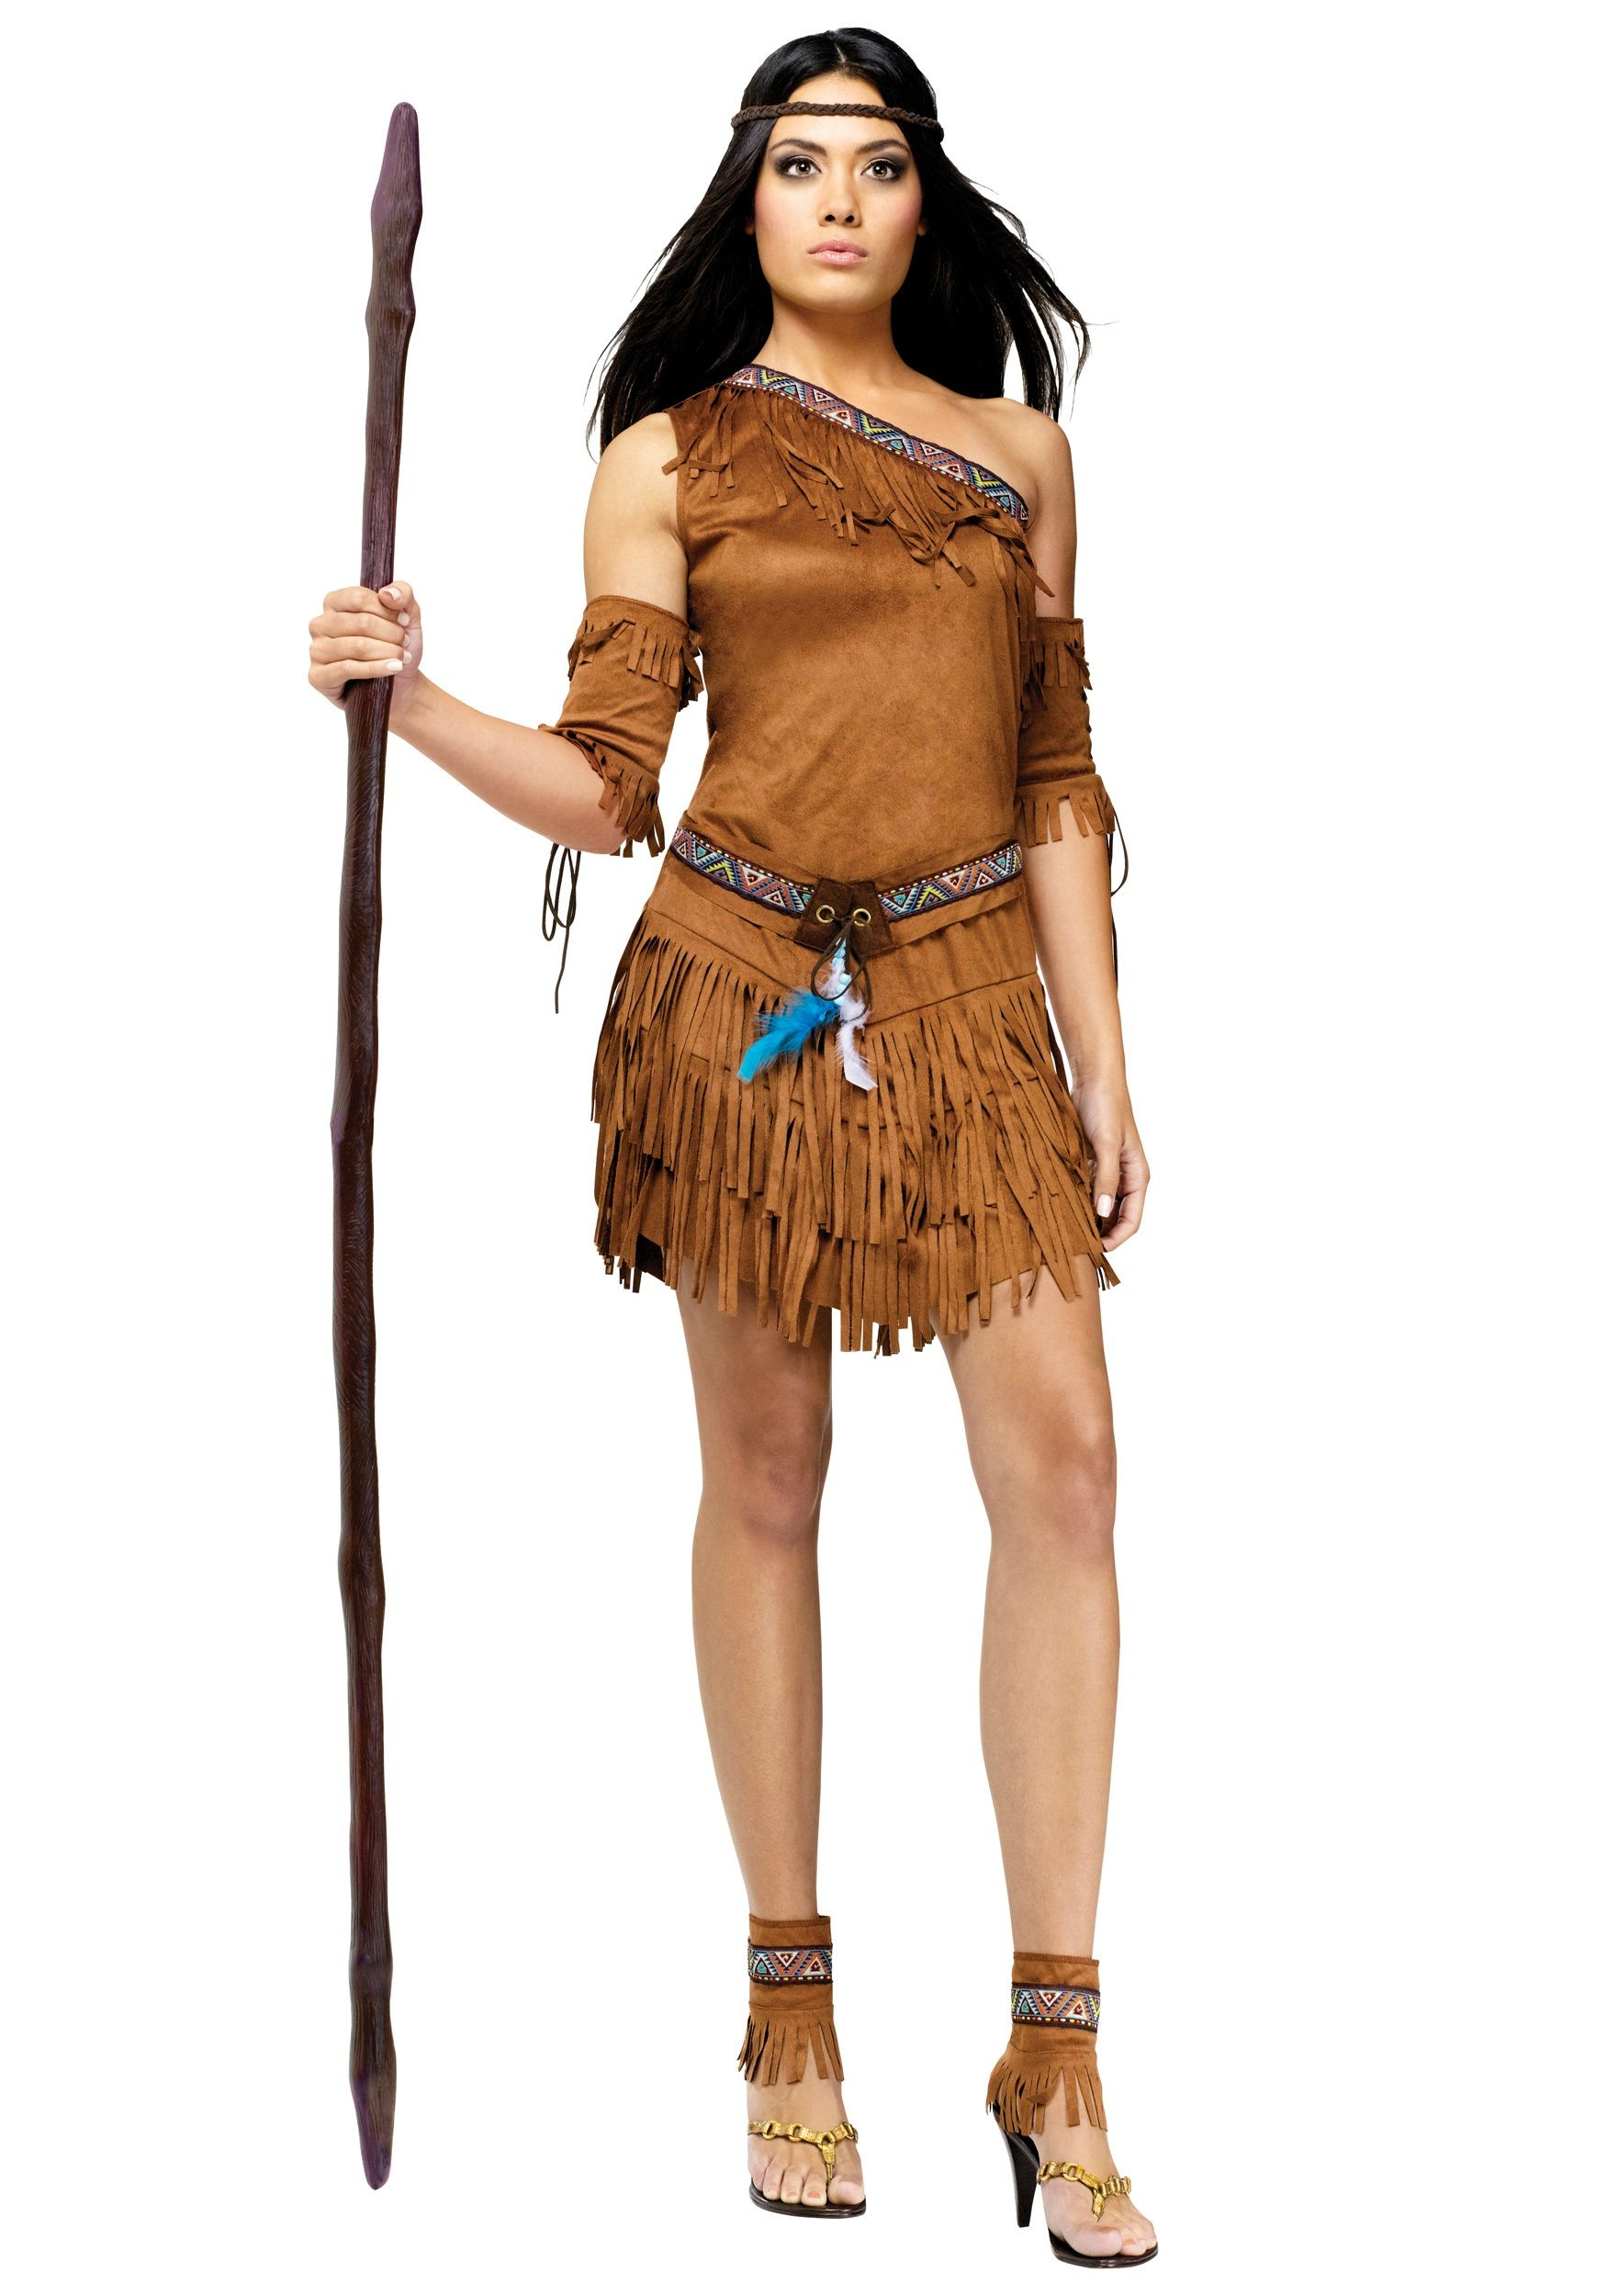 Pow Wow Indian Ladies Costume   Indian costumes, Saloon girls and ...